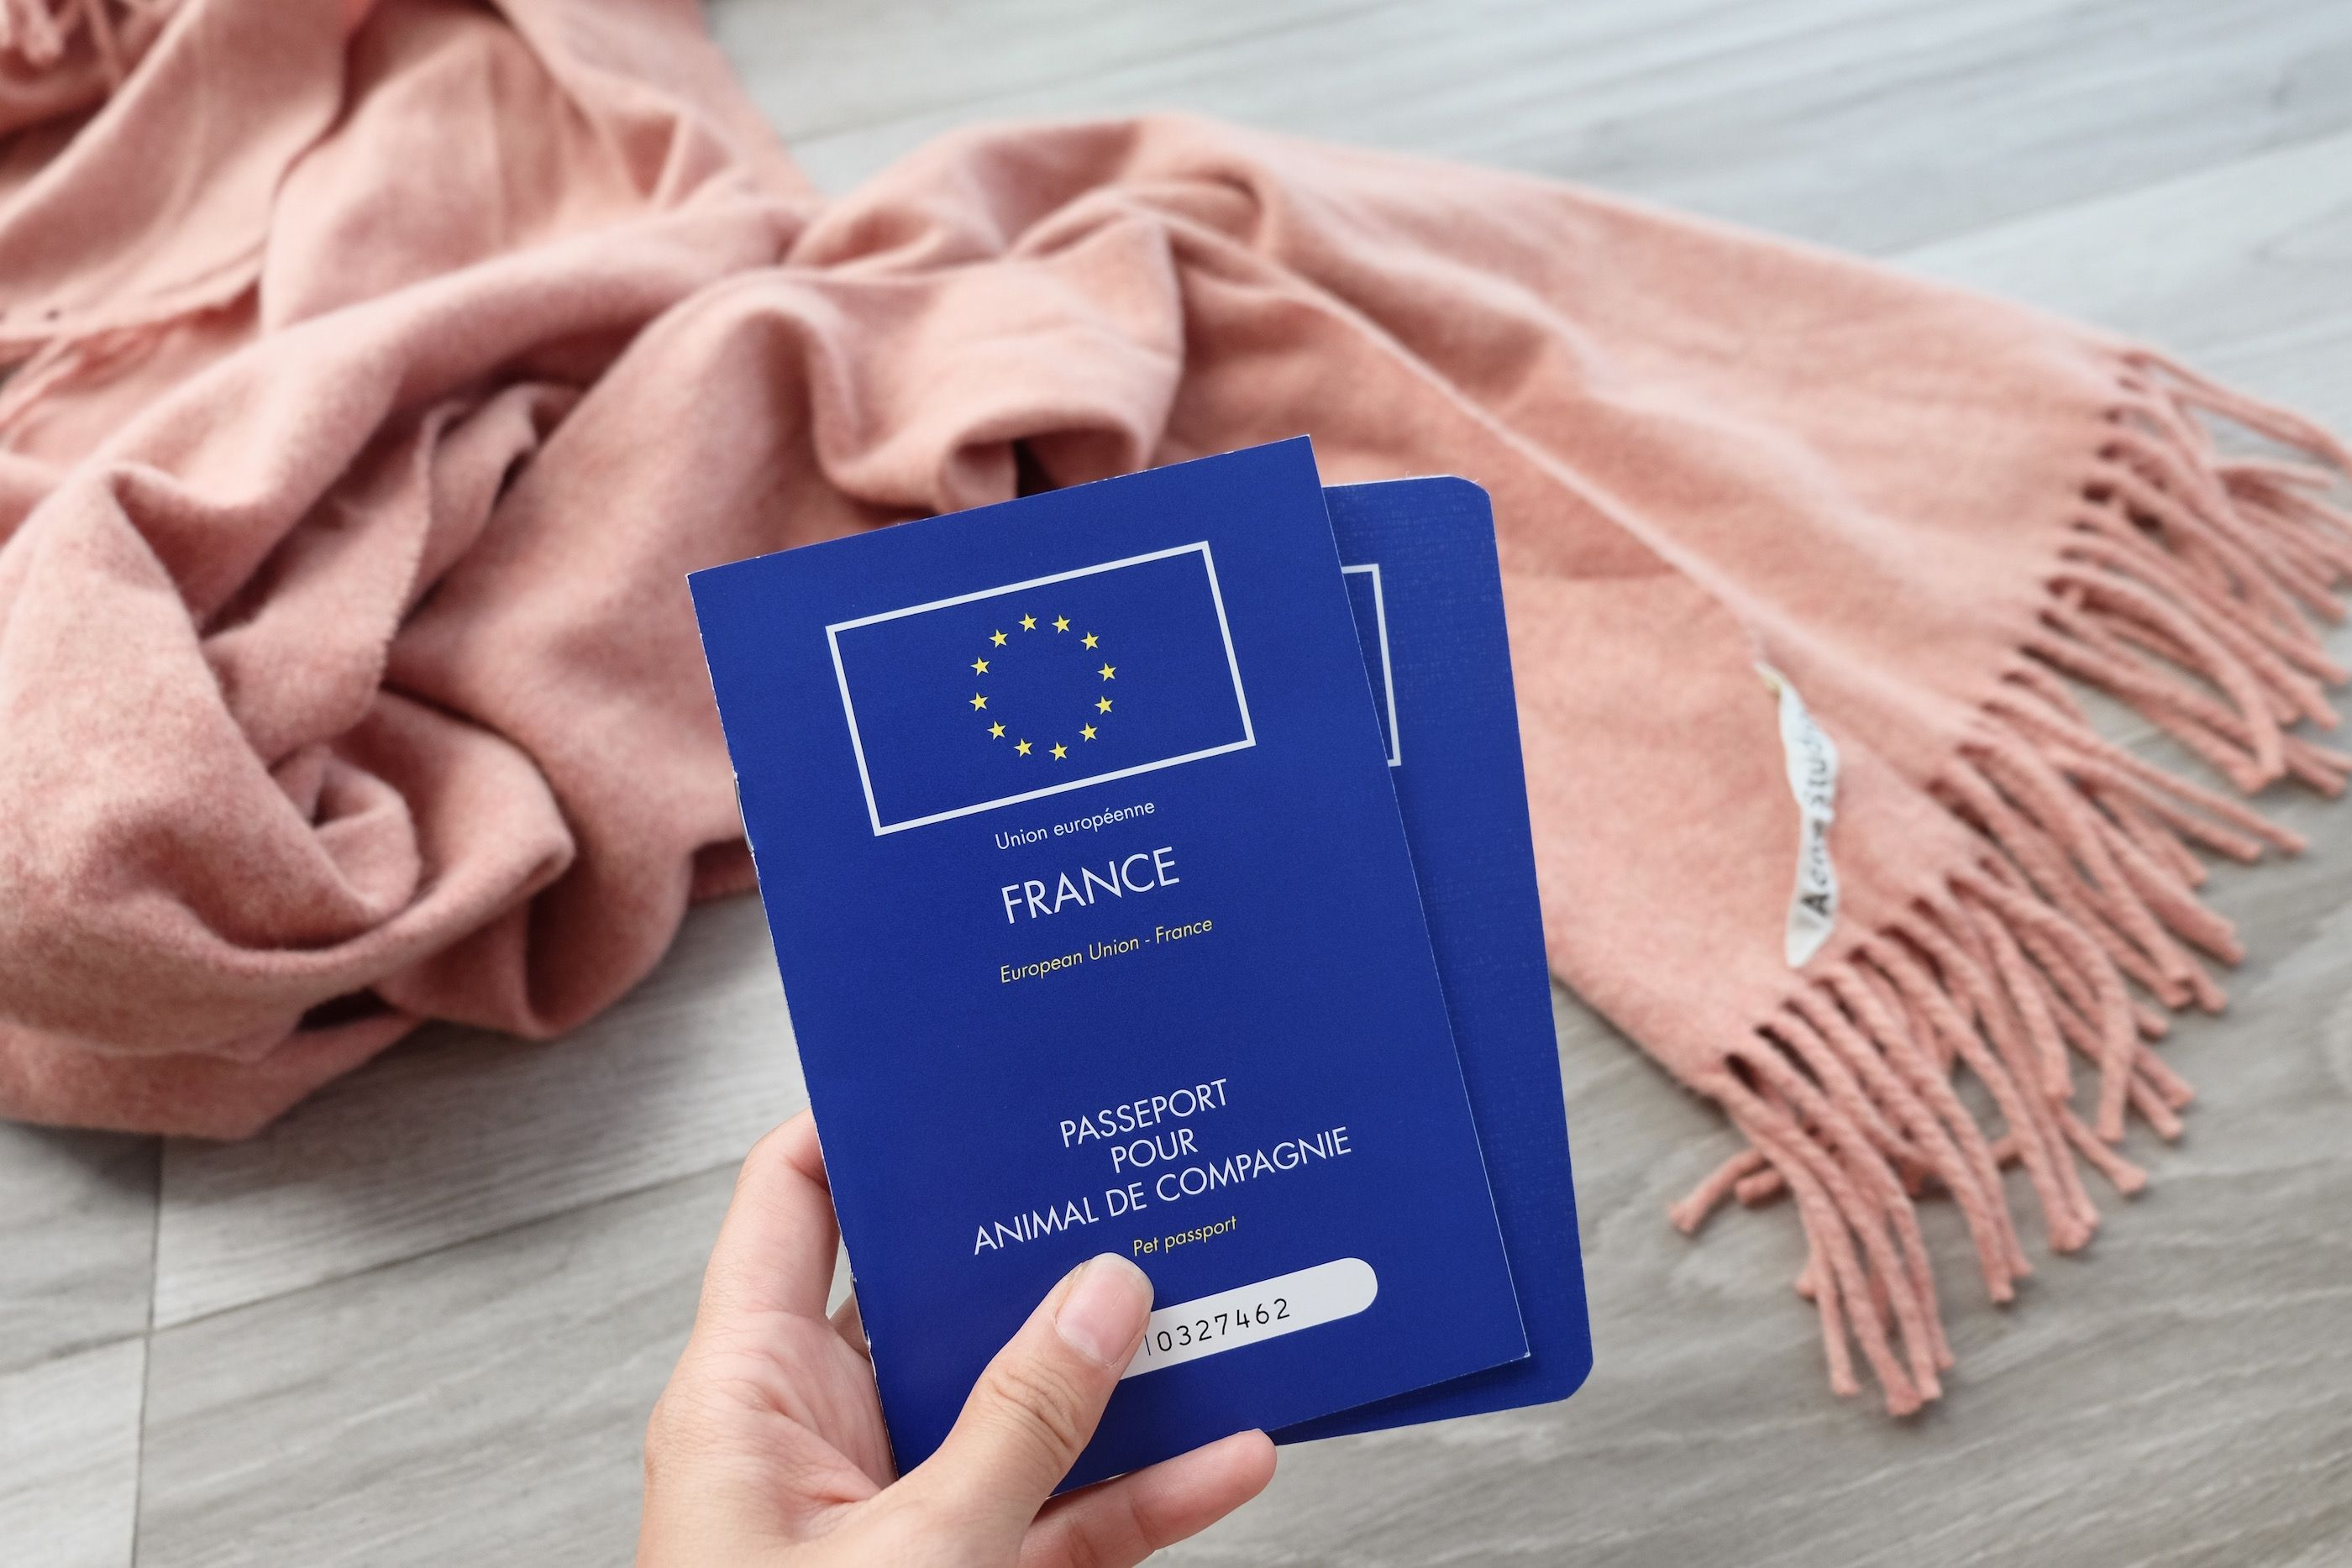 What You Need To Know About Pet Passports (With images